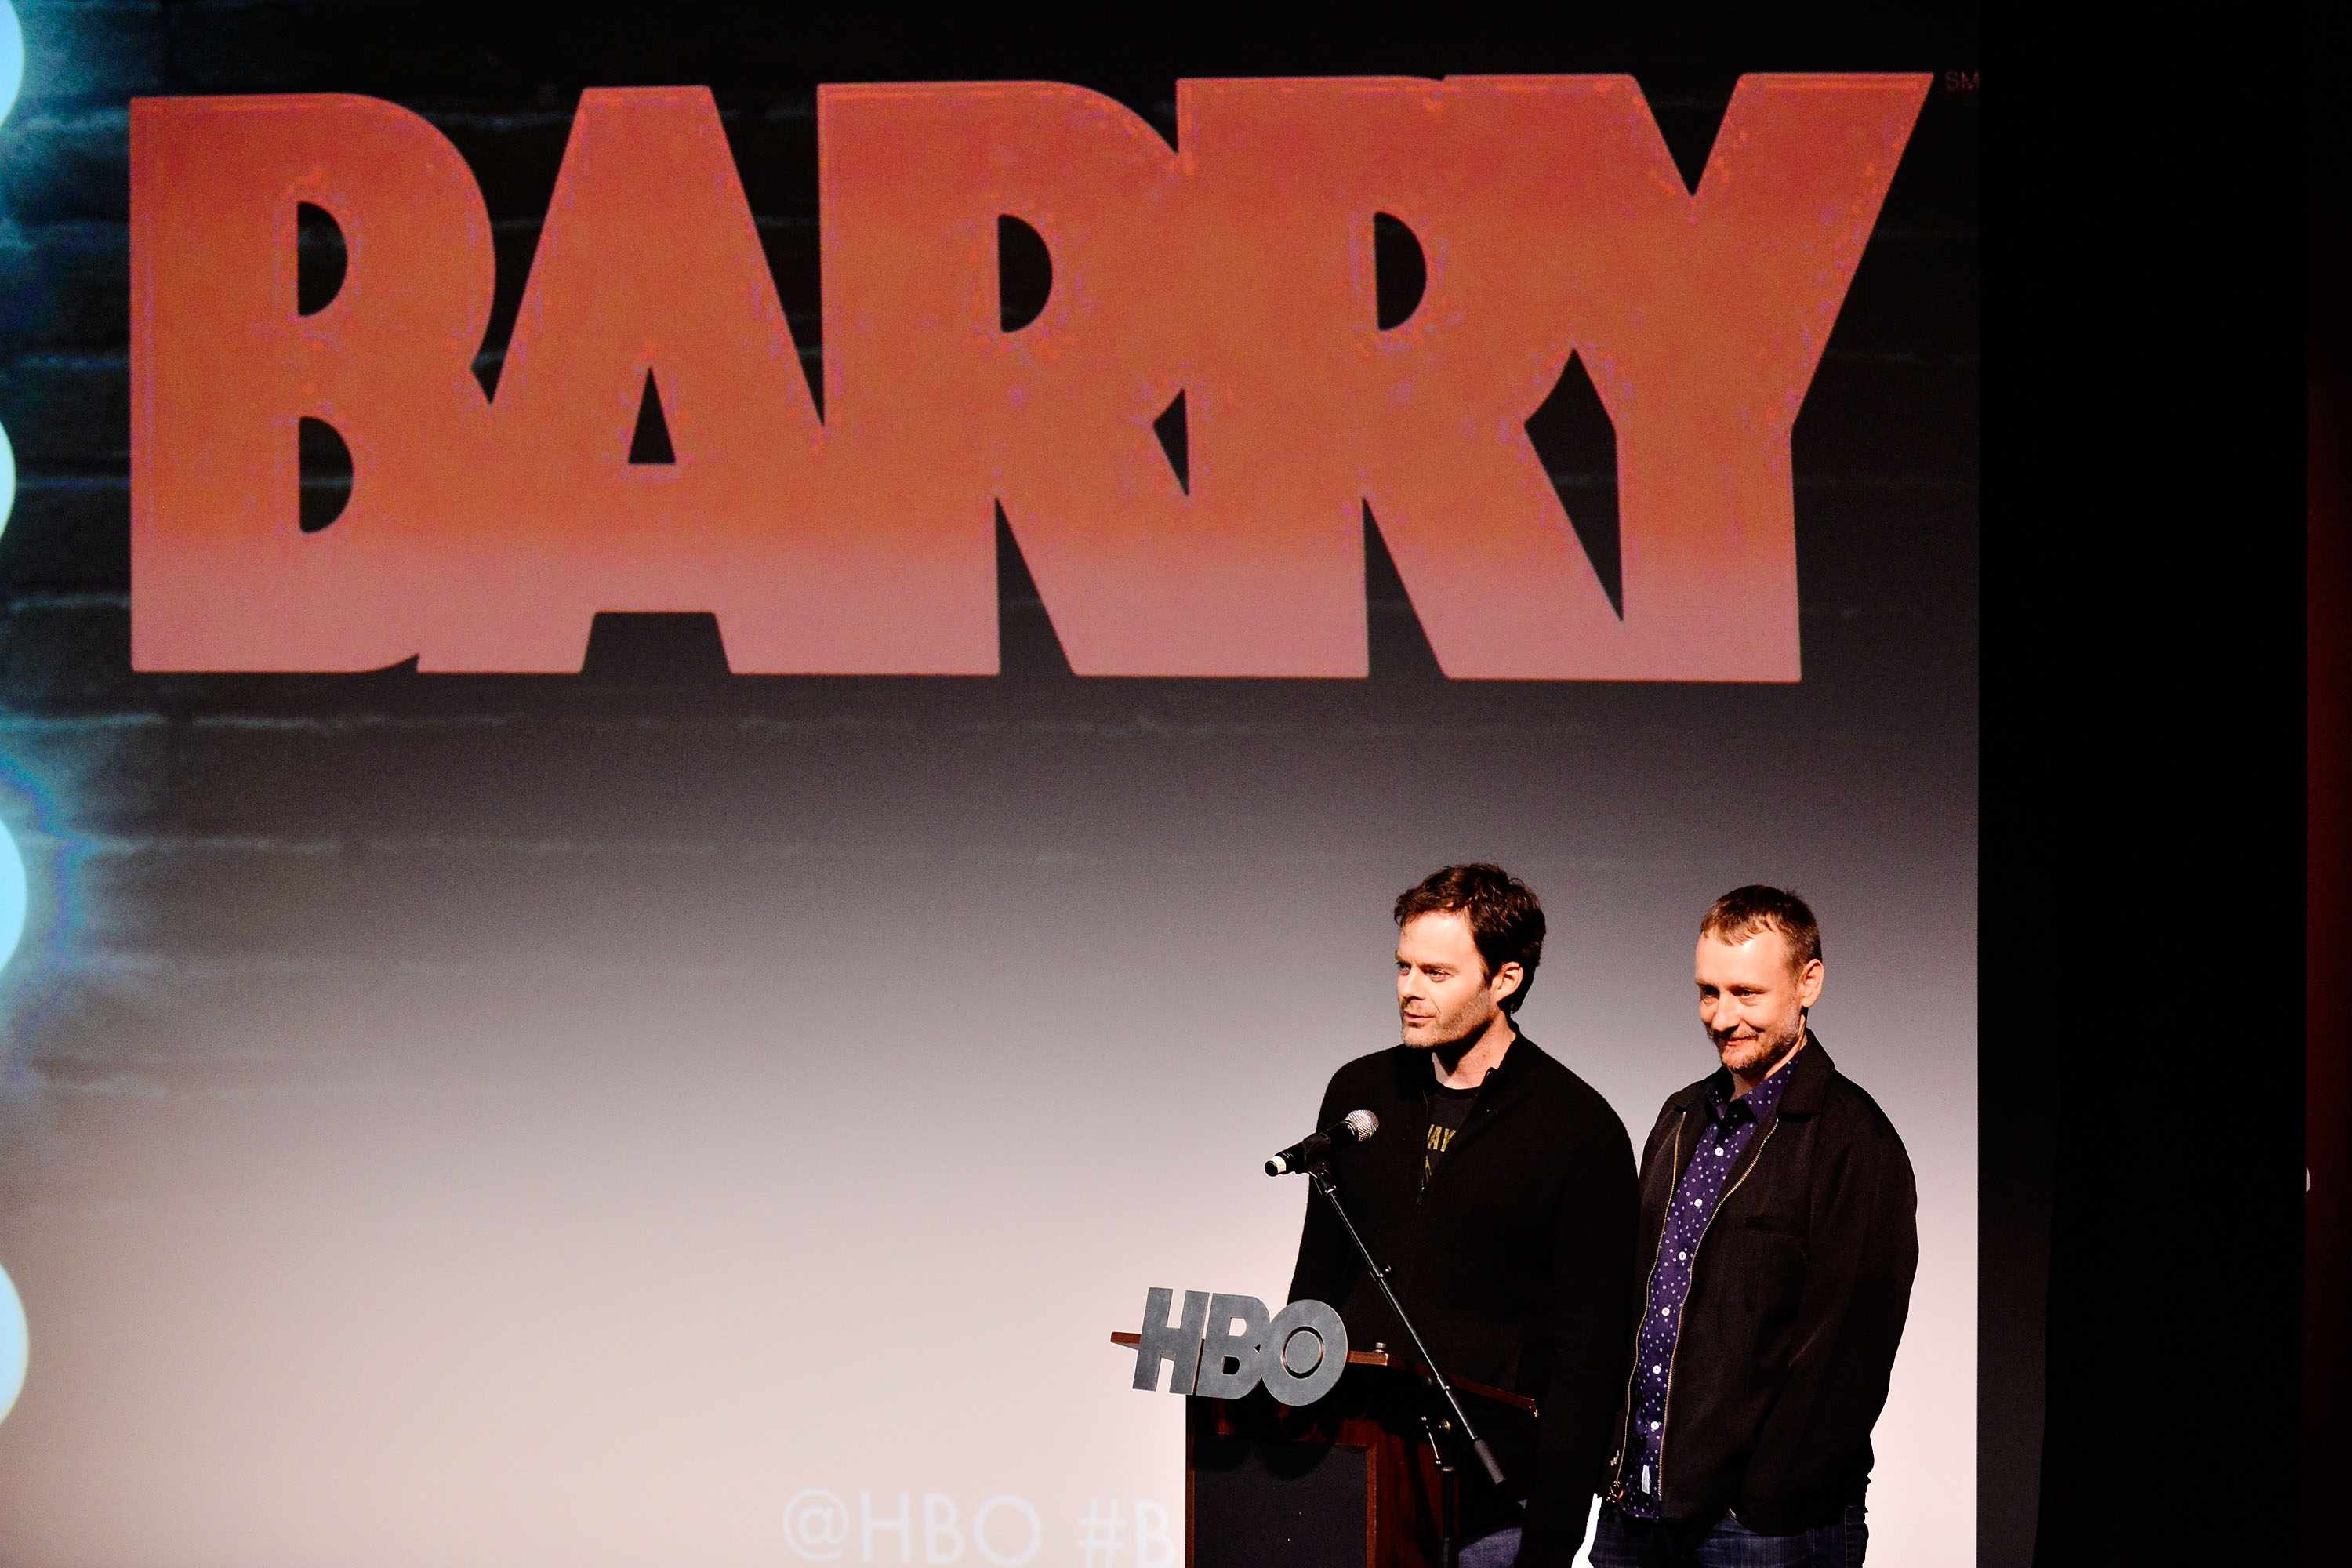 SAN DIEGO, CA - MARCH 27:  Bill Hader and Alec Berg attend the San Diego Premiere of Barry From HBO on March 27, 2018 in San Diego, California.  (Photo by FilmMagic/FilmMagic for HBO)